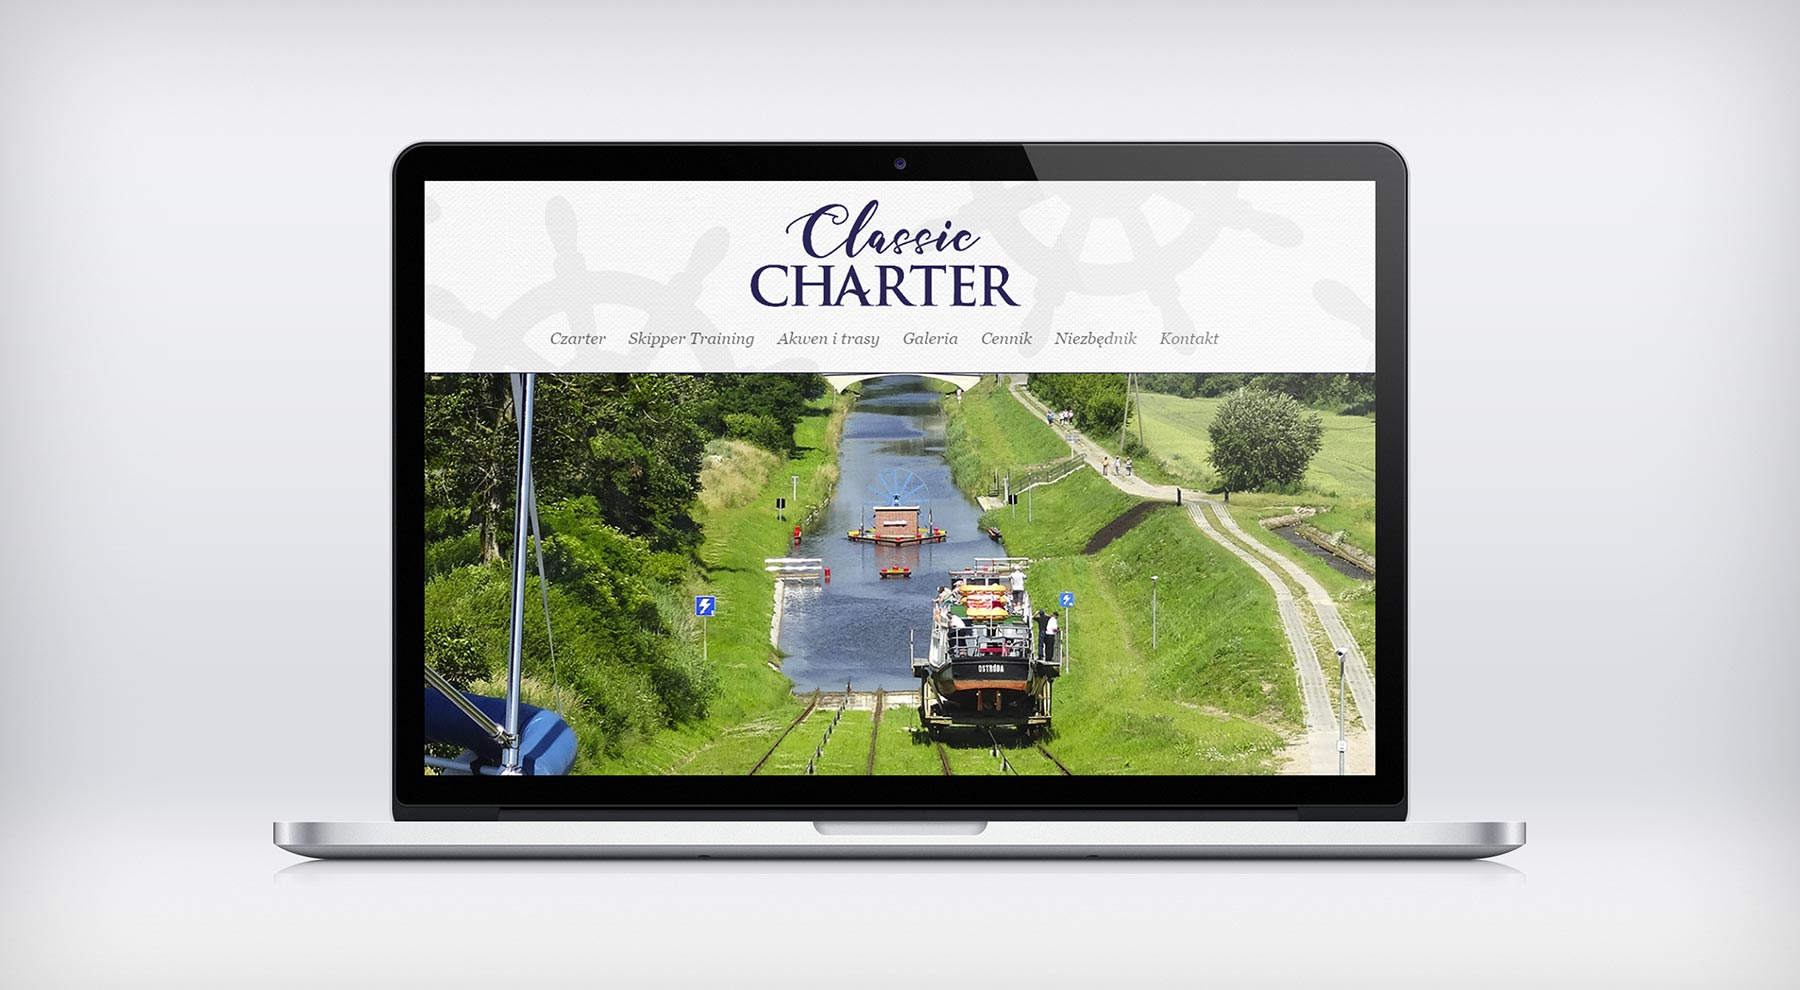 classic-charter-laptop